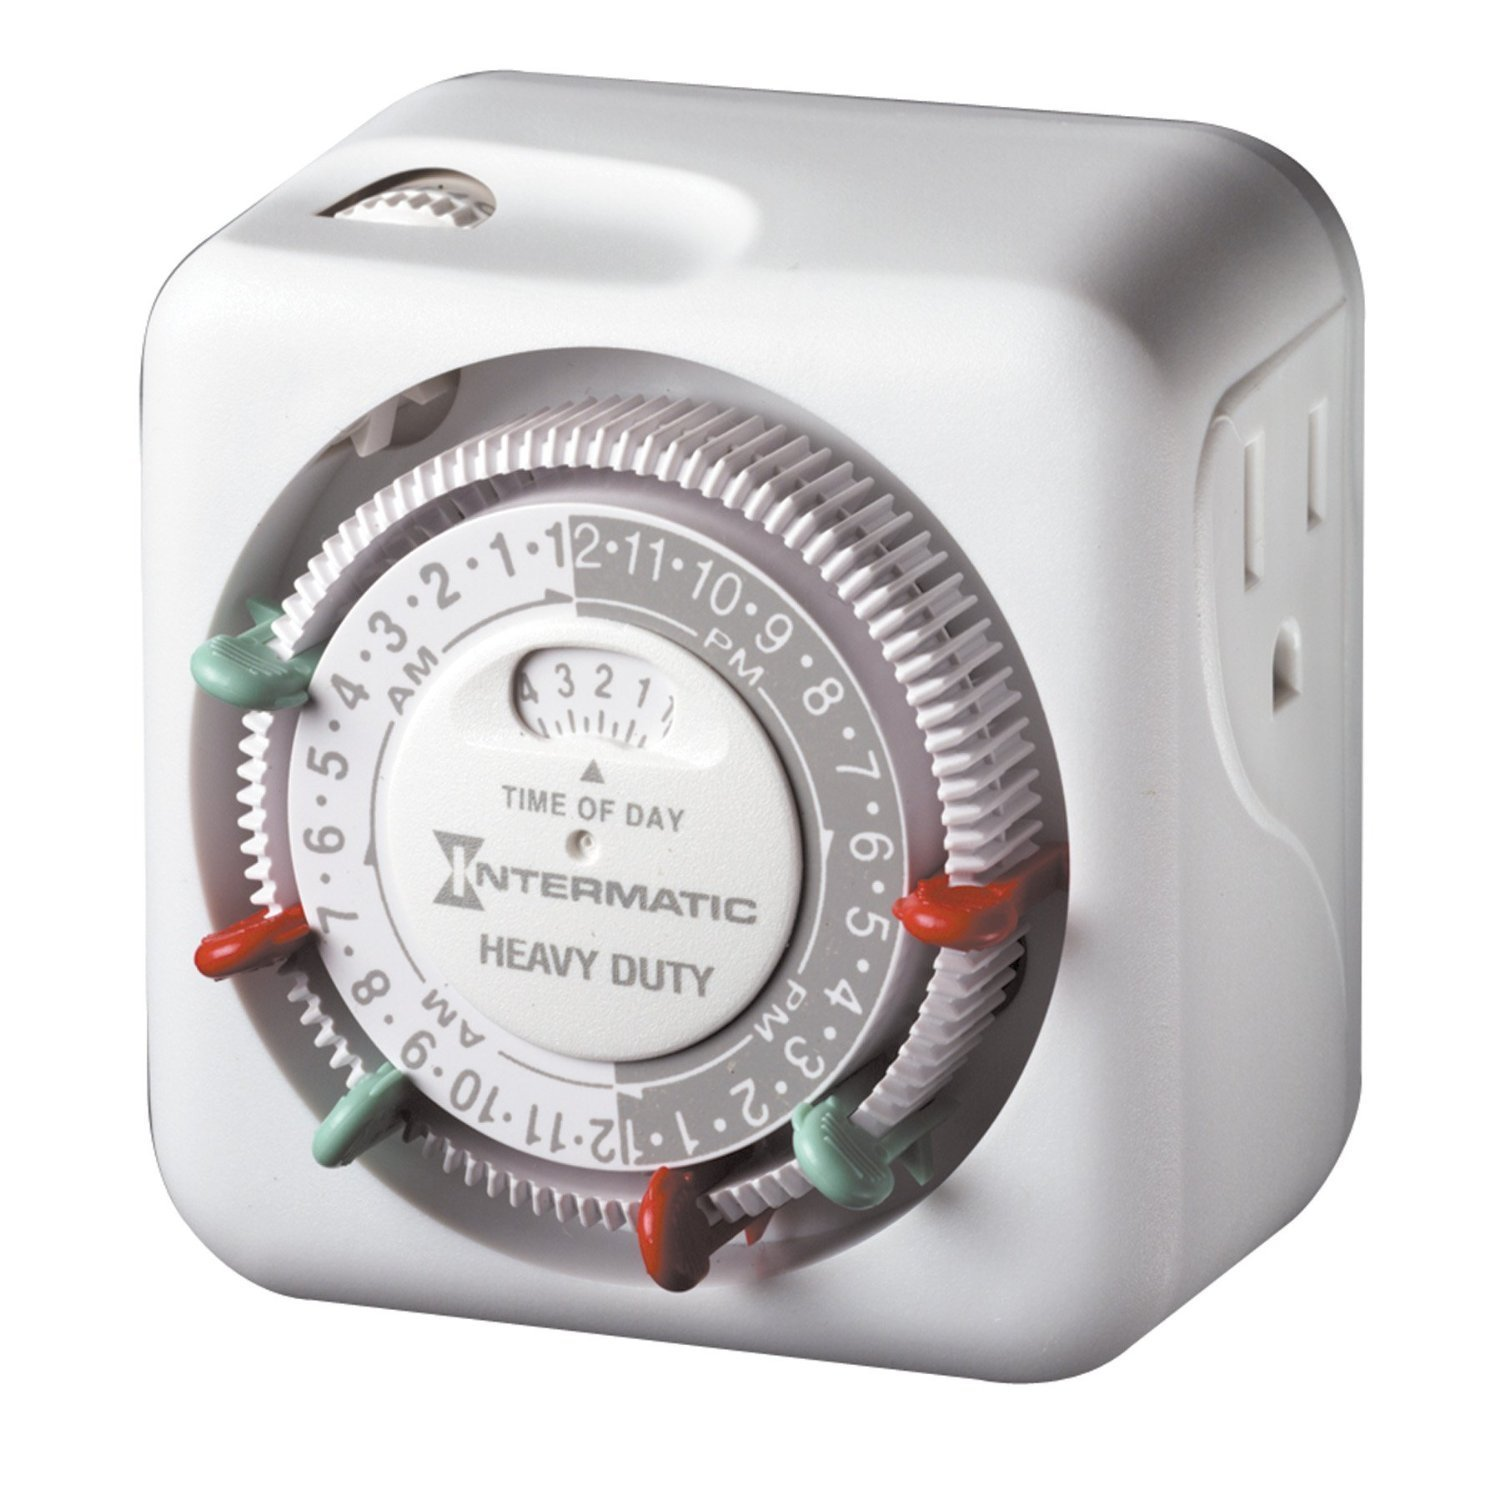 Intermatic TN311 15 Amp Heavy Duty Grounded Timer - with Extra Replacement Tripper (2 Red & 2 Green) by Intermatic